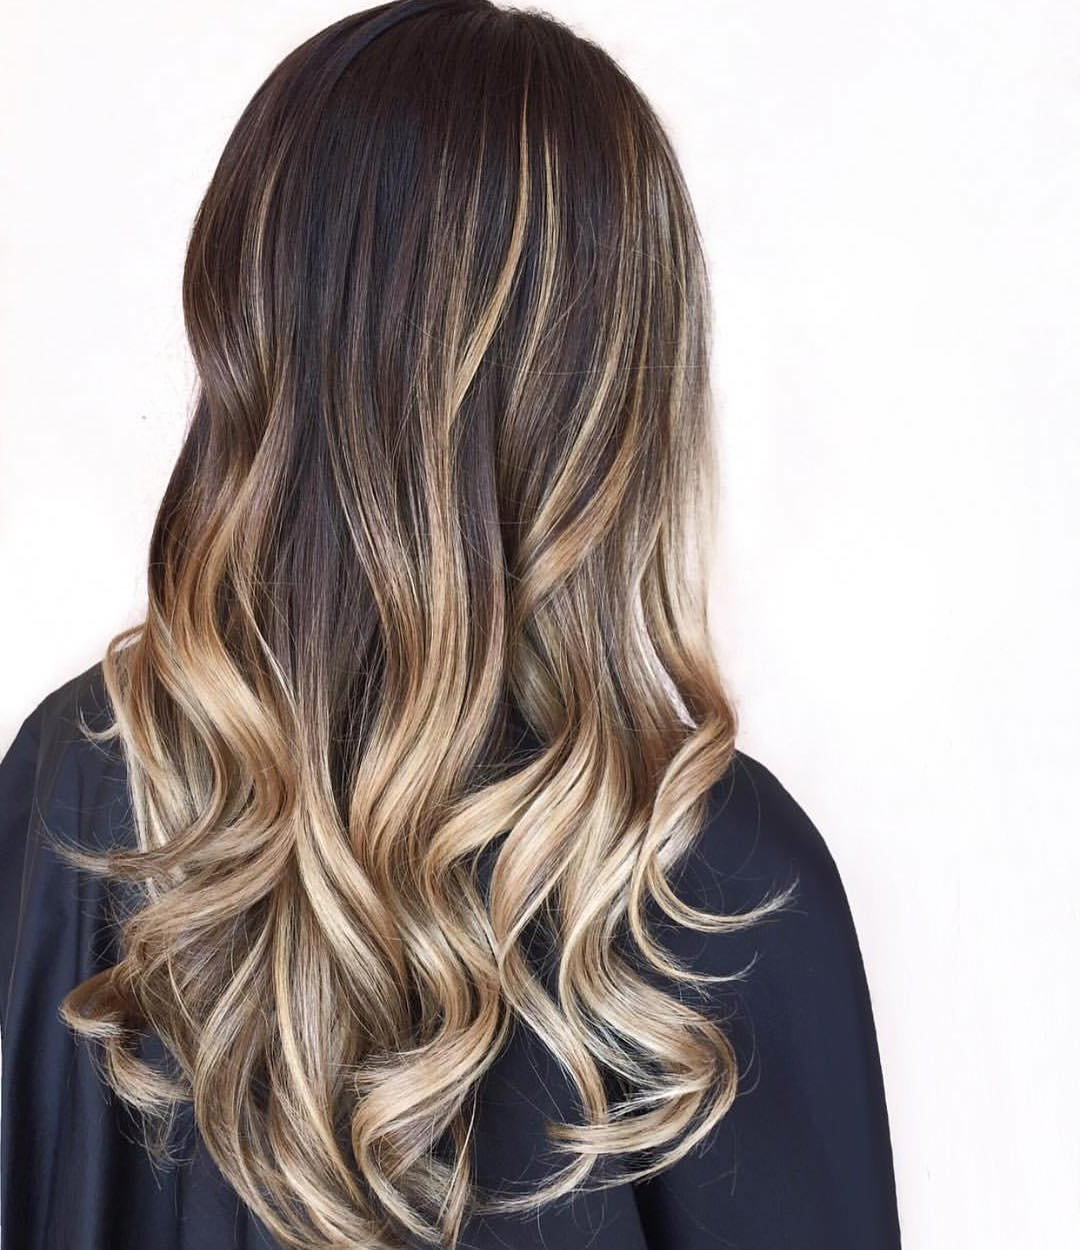 30 Brown Colored Hairstyles With Blonde Balayage 2018 | Hairstyle Guru With High Contrast Blonde Balayage Bob Hairstyles (View 7 of 20)